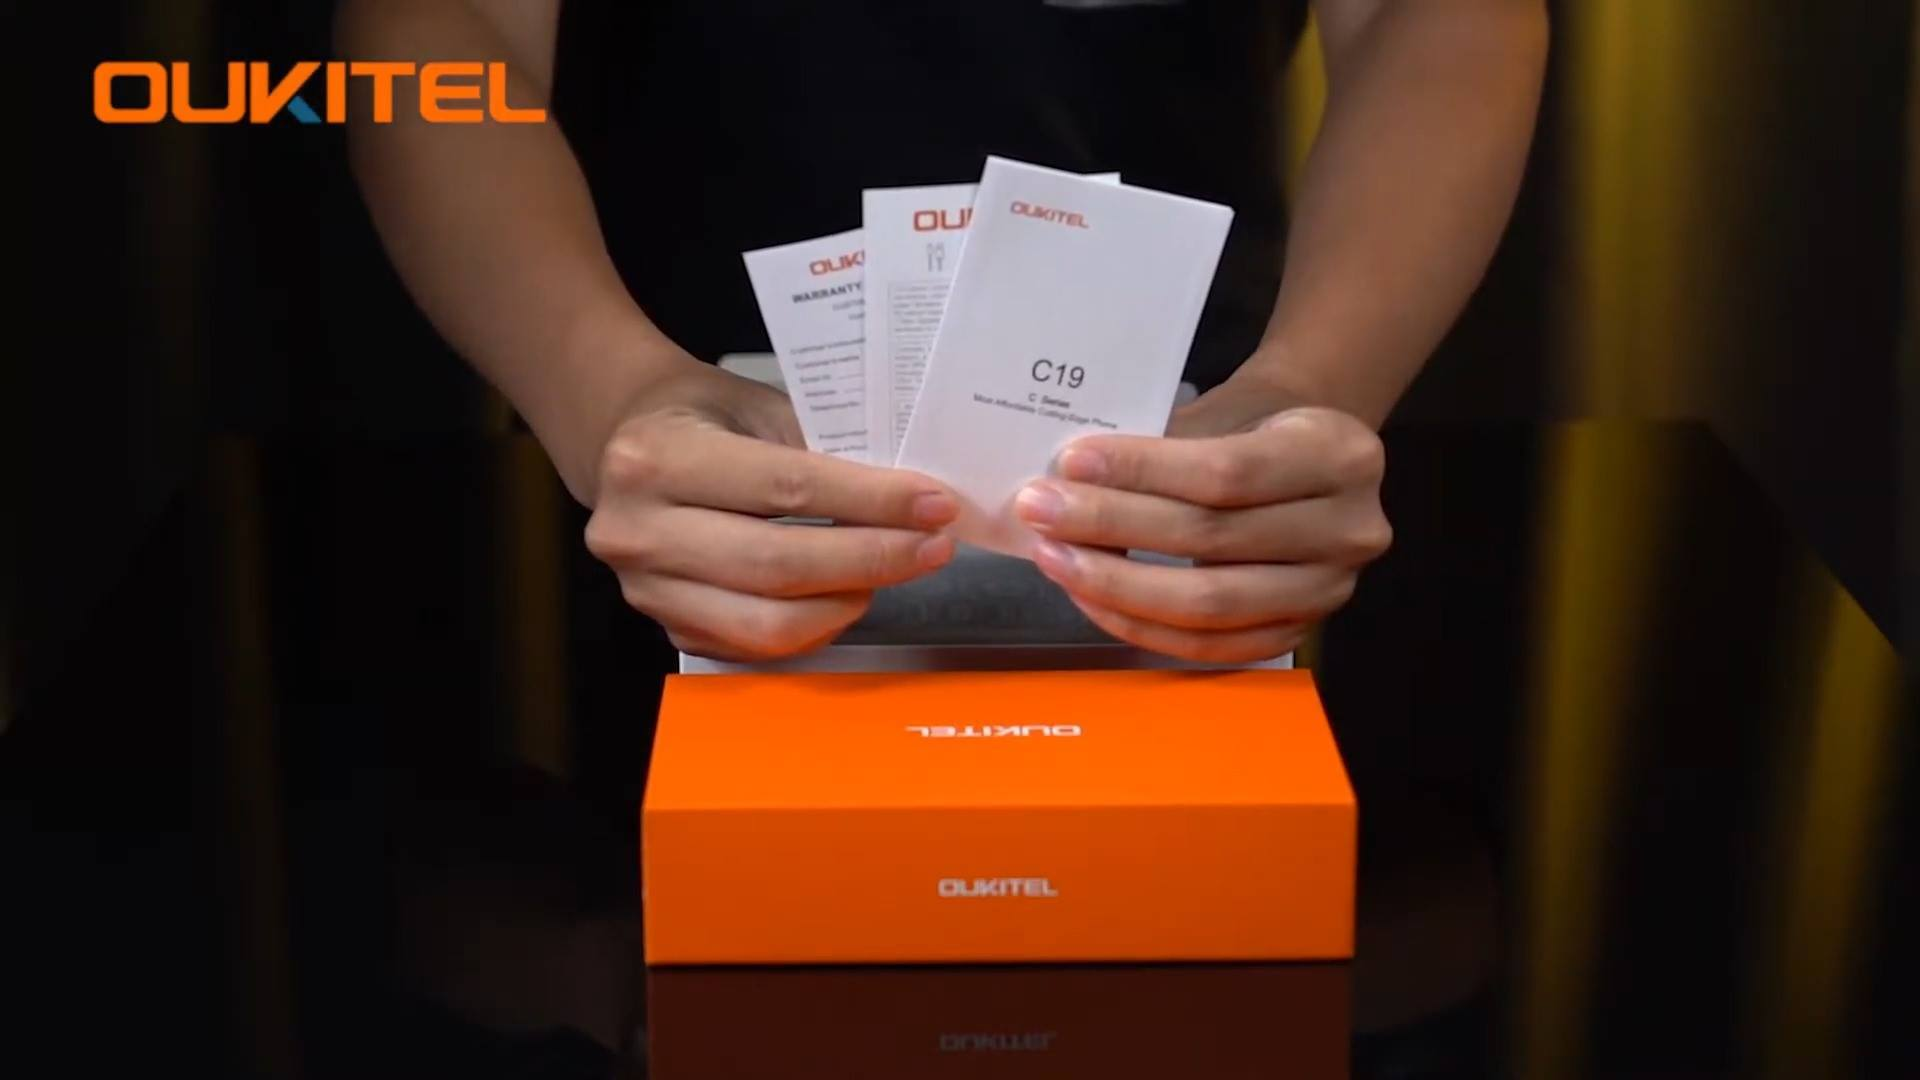 Unboxing the entry-level beast Oukitel C19, check the video to see what is included in the package😍 Buy Oukitel C19 at only $59.99 with 50% off on July 13 🛒: www.tomtop.com